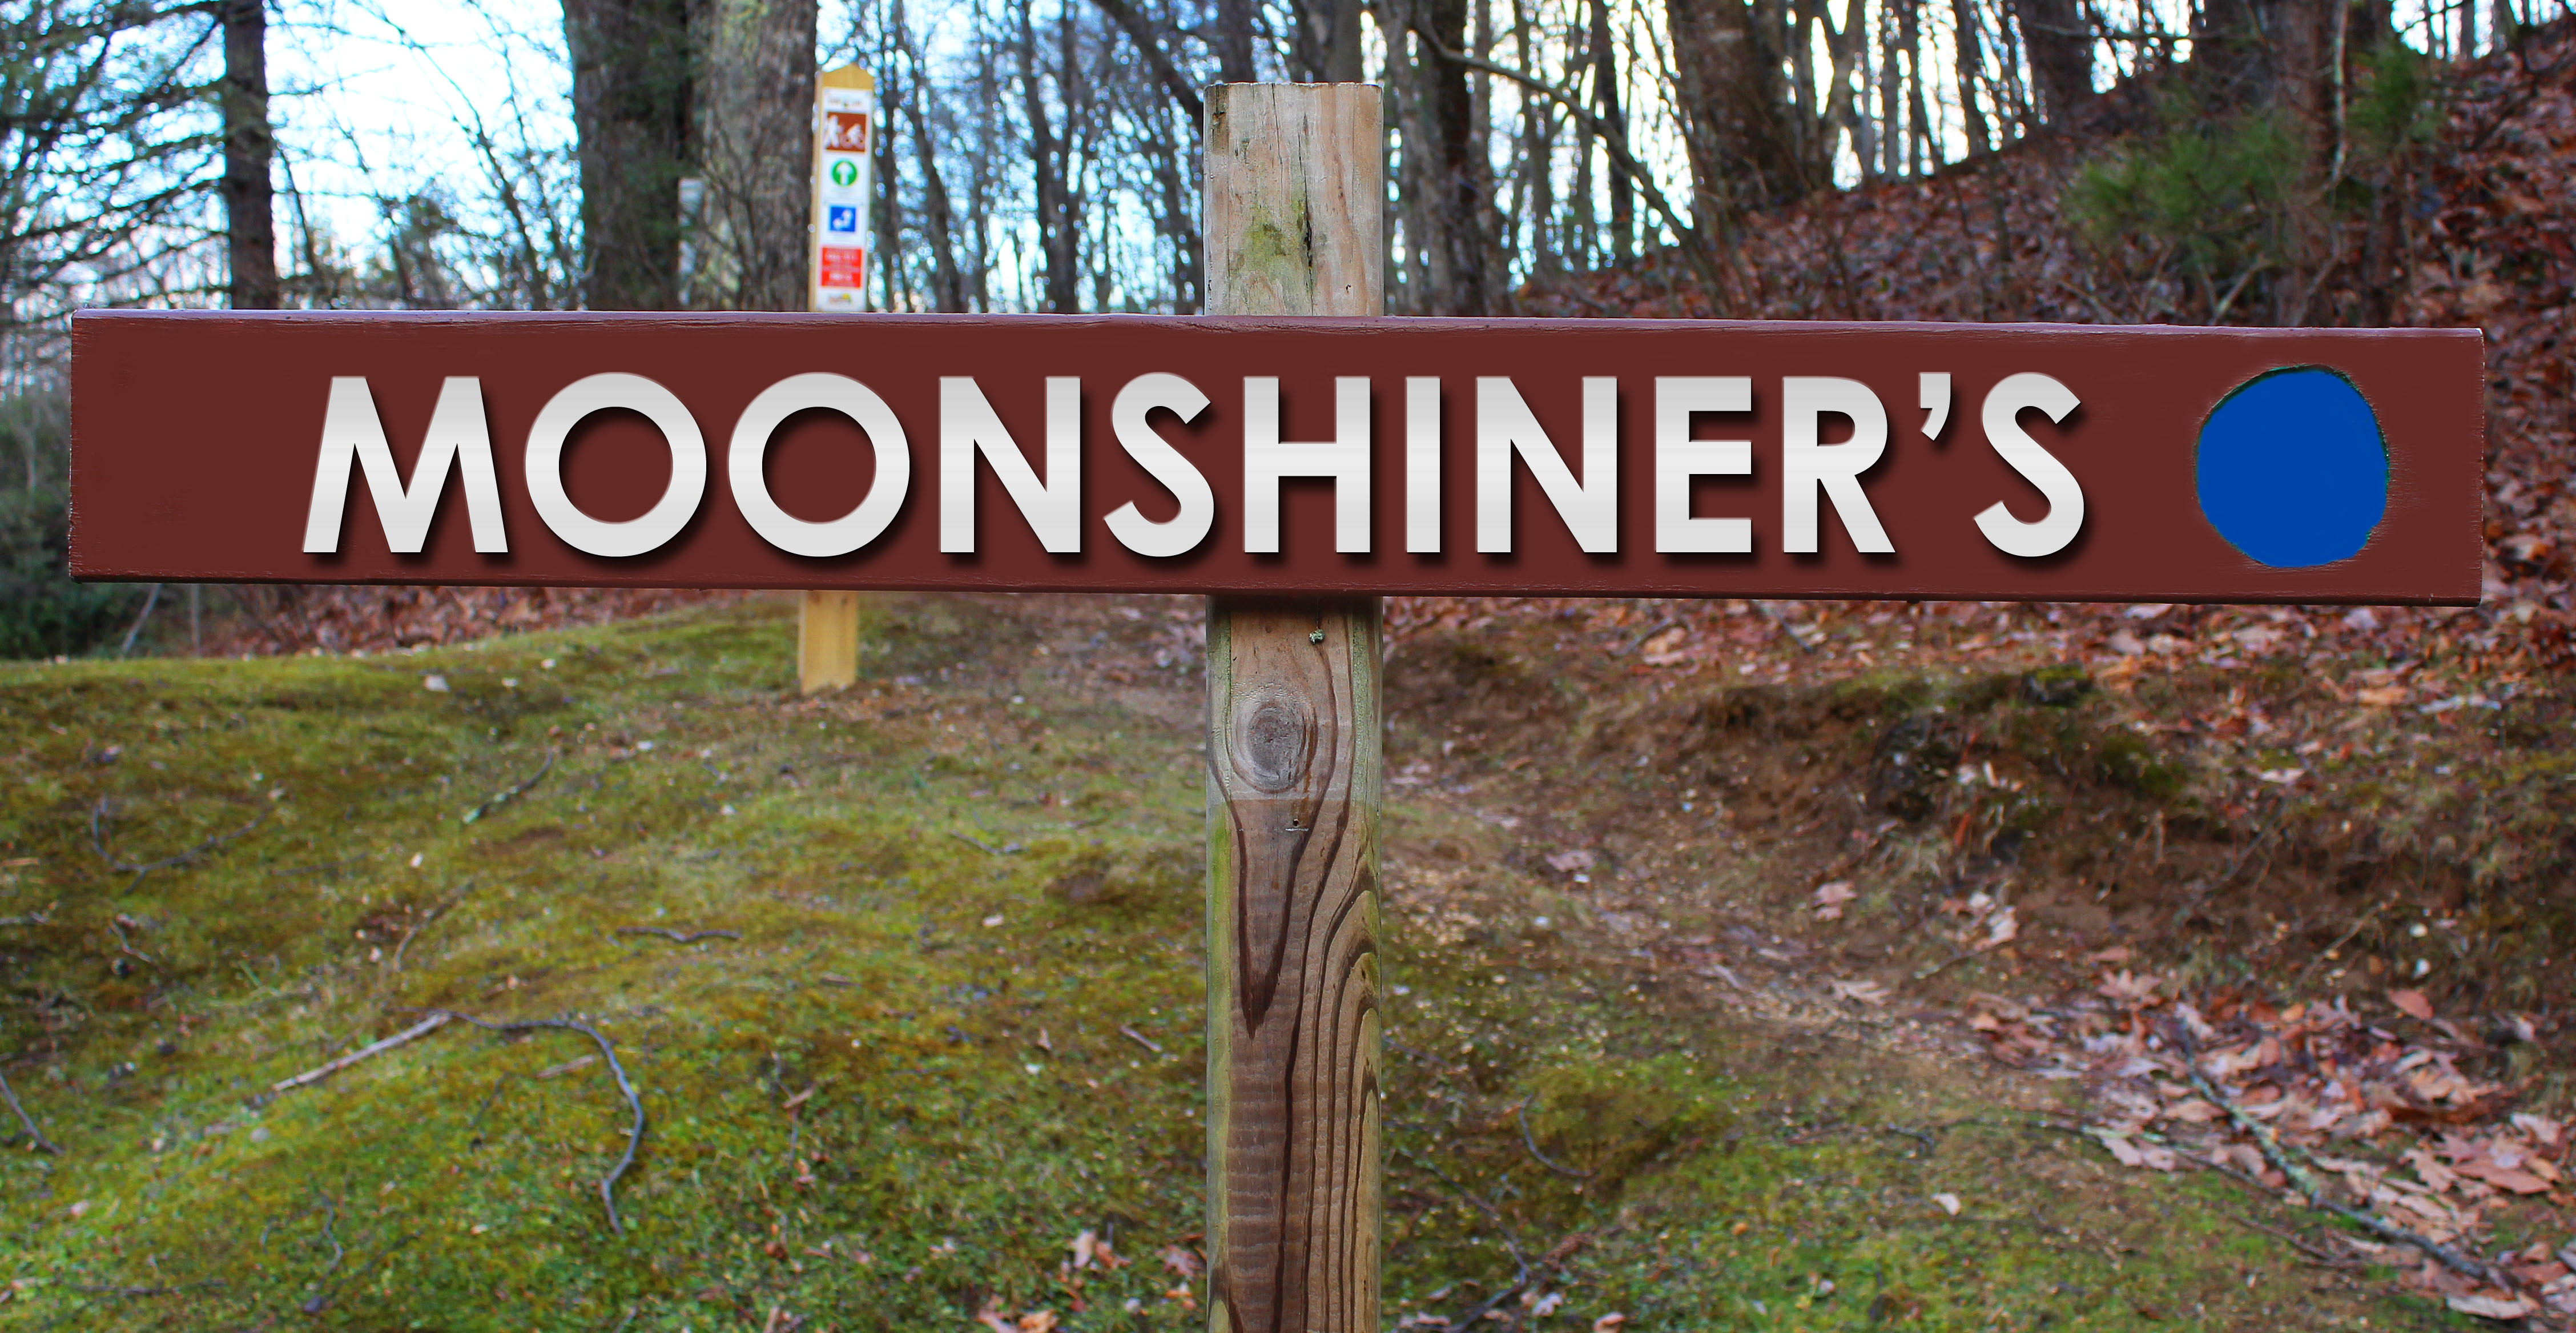 Picture of Moonshiner's trail sign